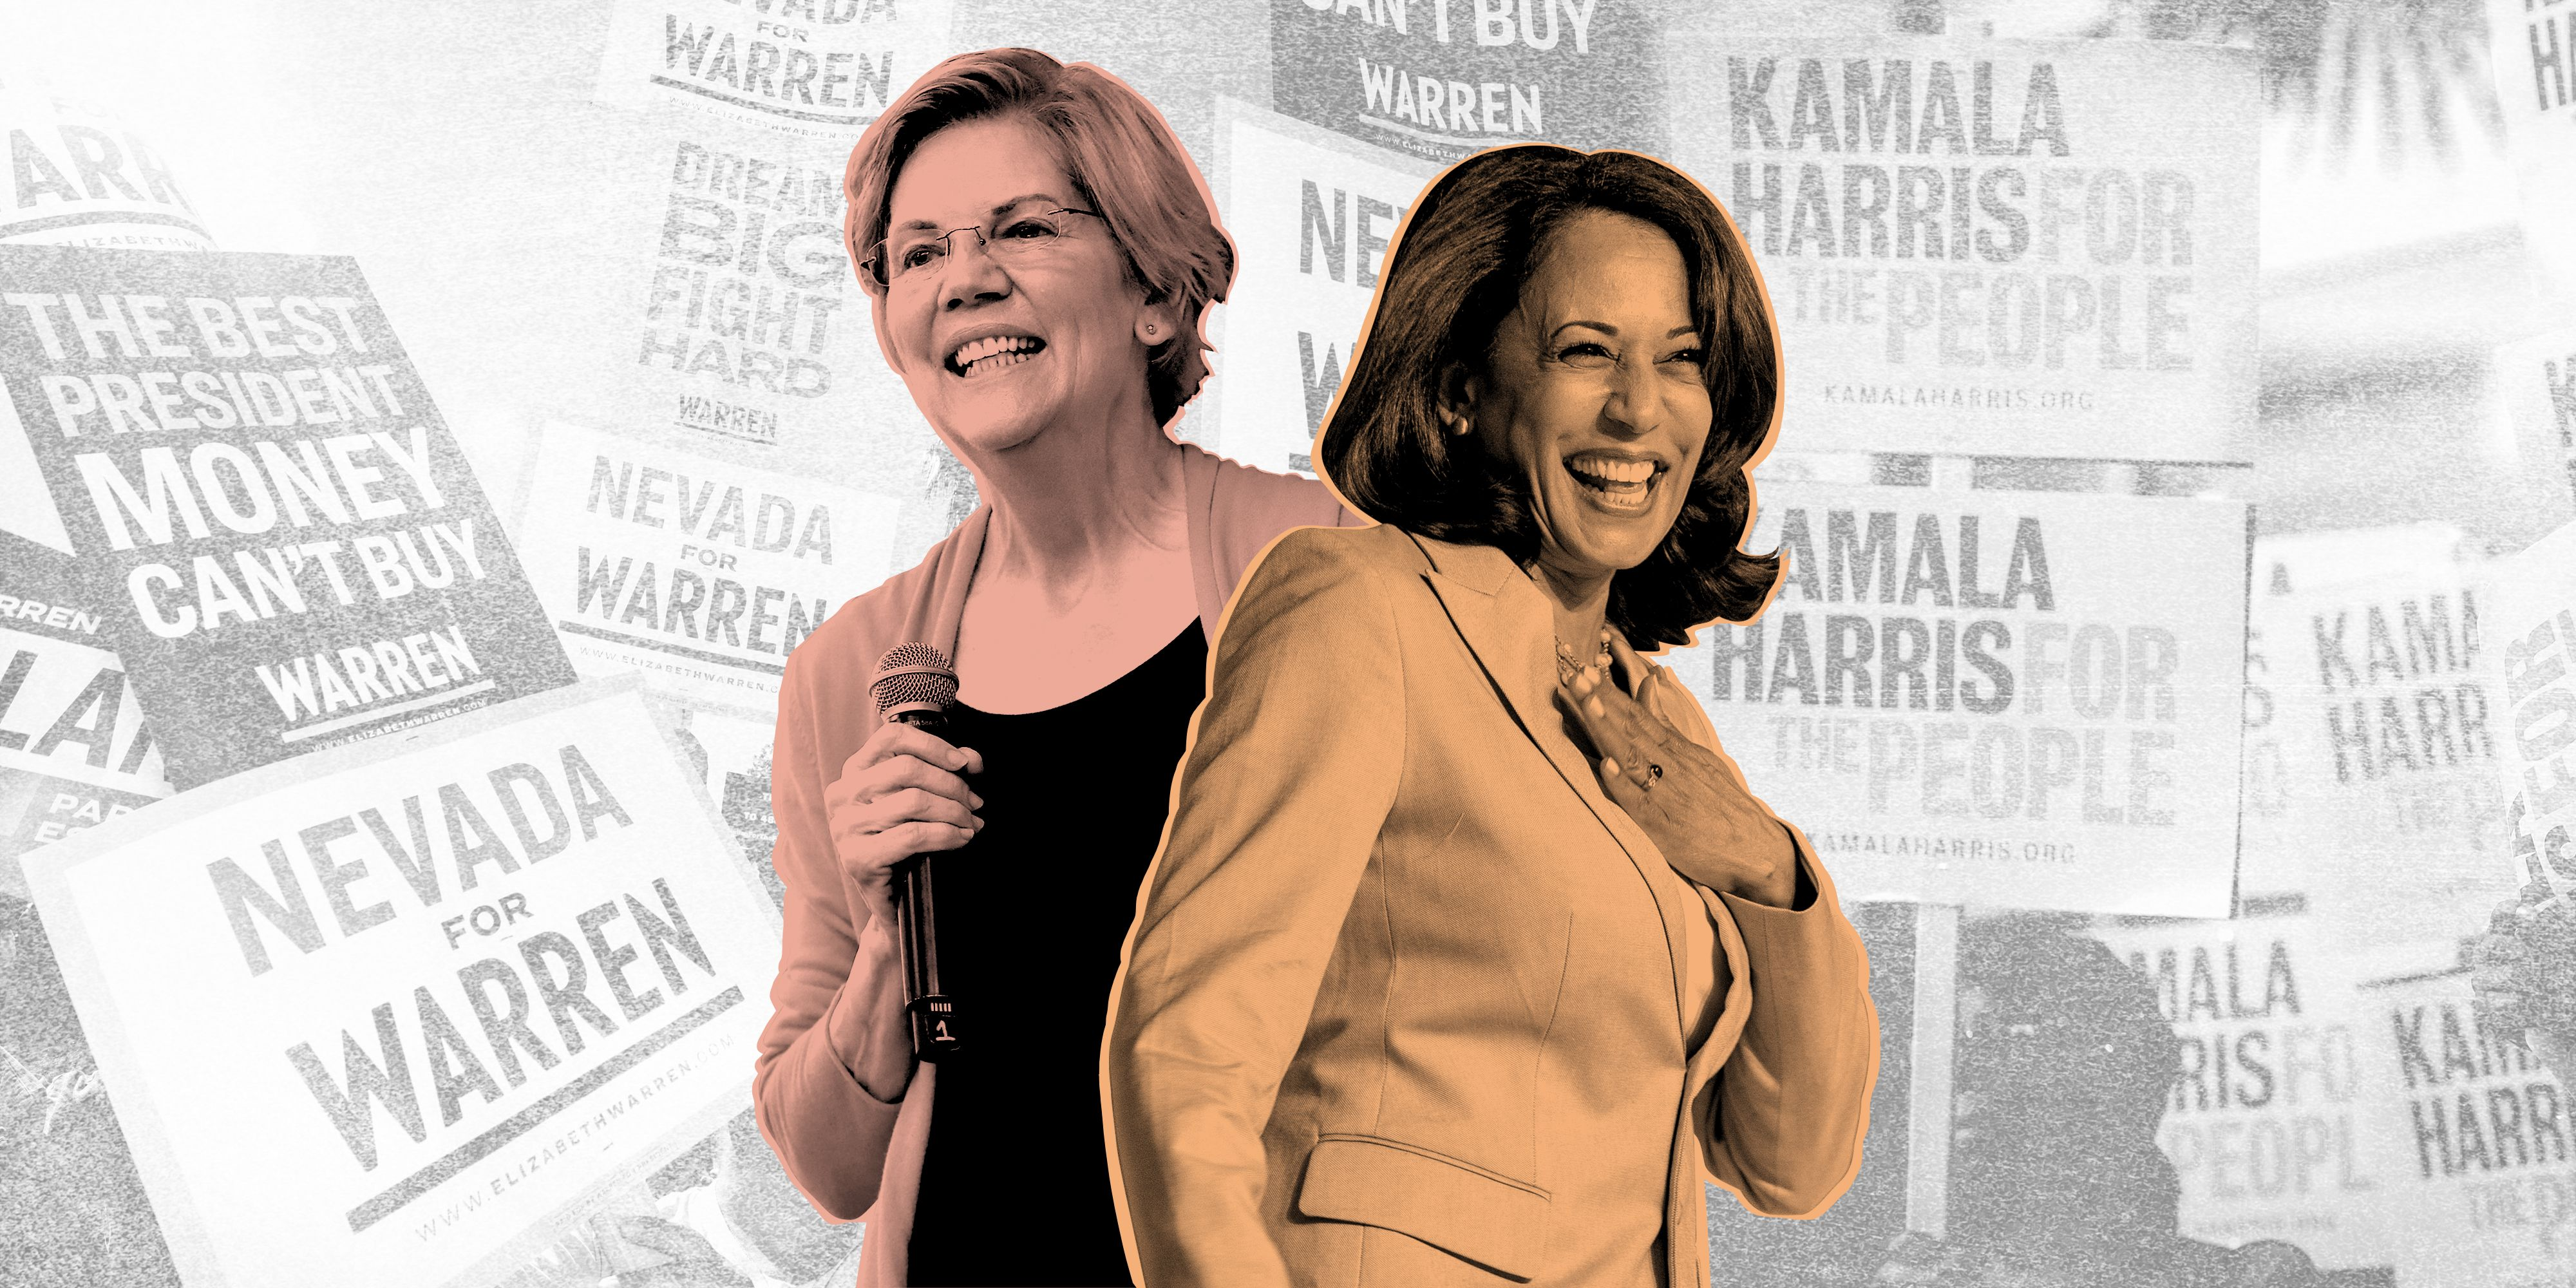 Why We Need a Two Woman Presidential Ticket